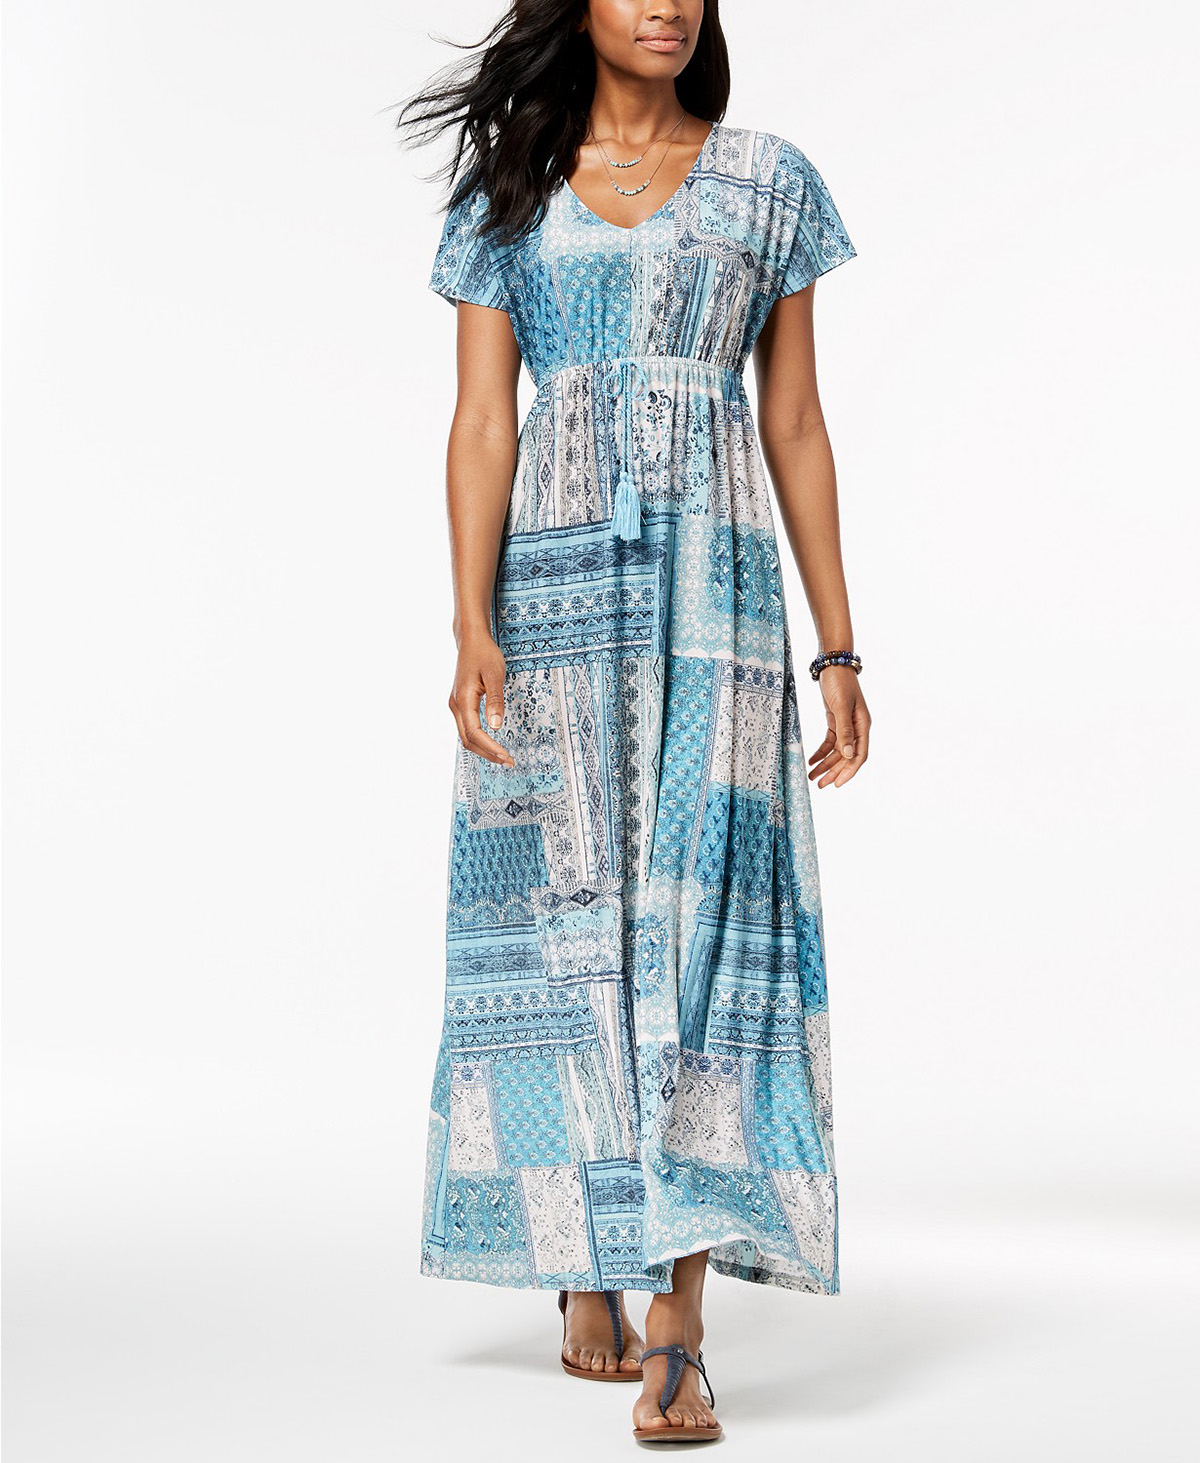 Macys Sell: Need An Easy Summer Dress? This Comfy Maxidress Is On Sale